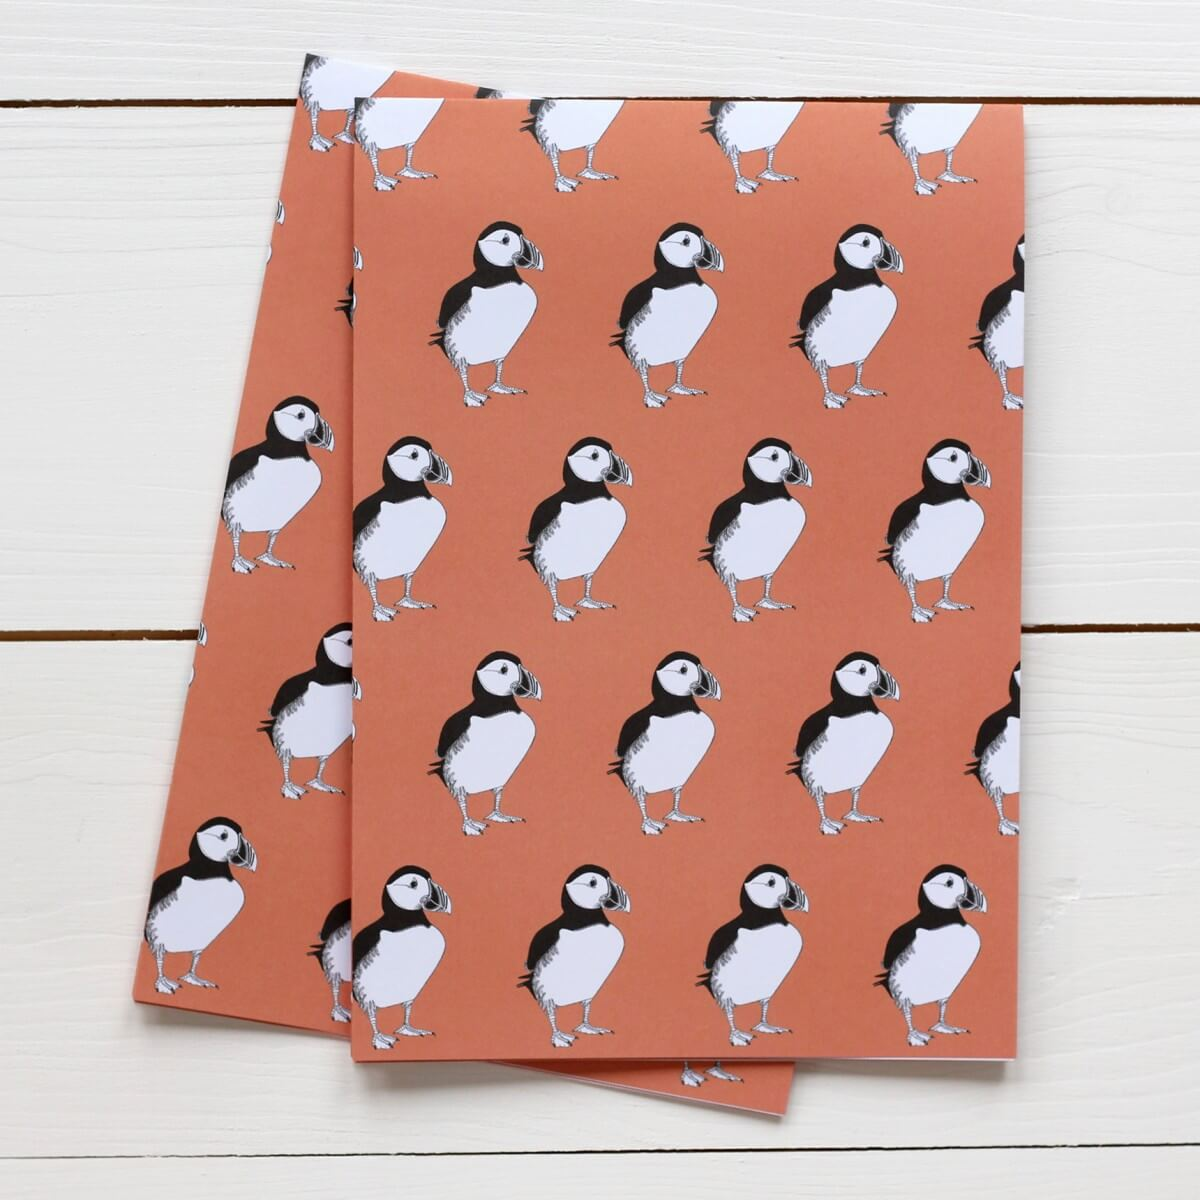 Puffin Print Gift Wrap by Bird the Artist